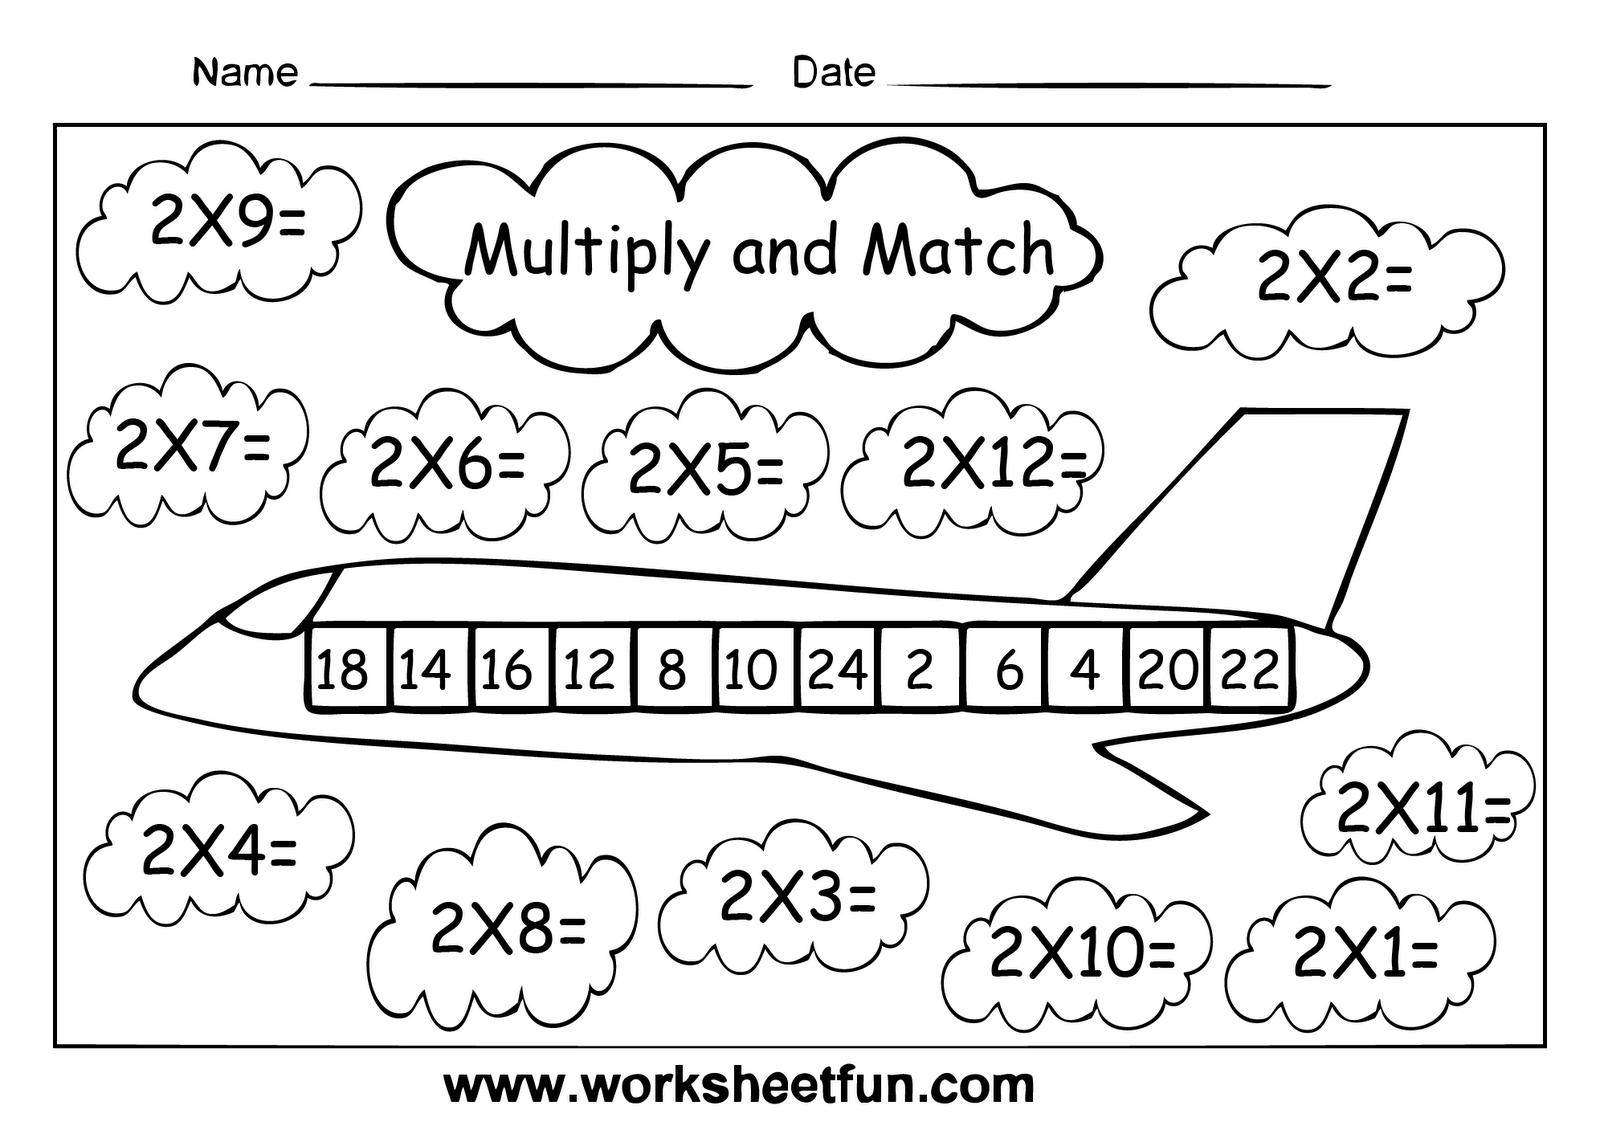 Multiplication Worksheets Level 1 3